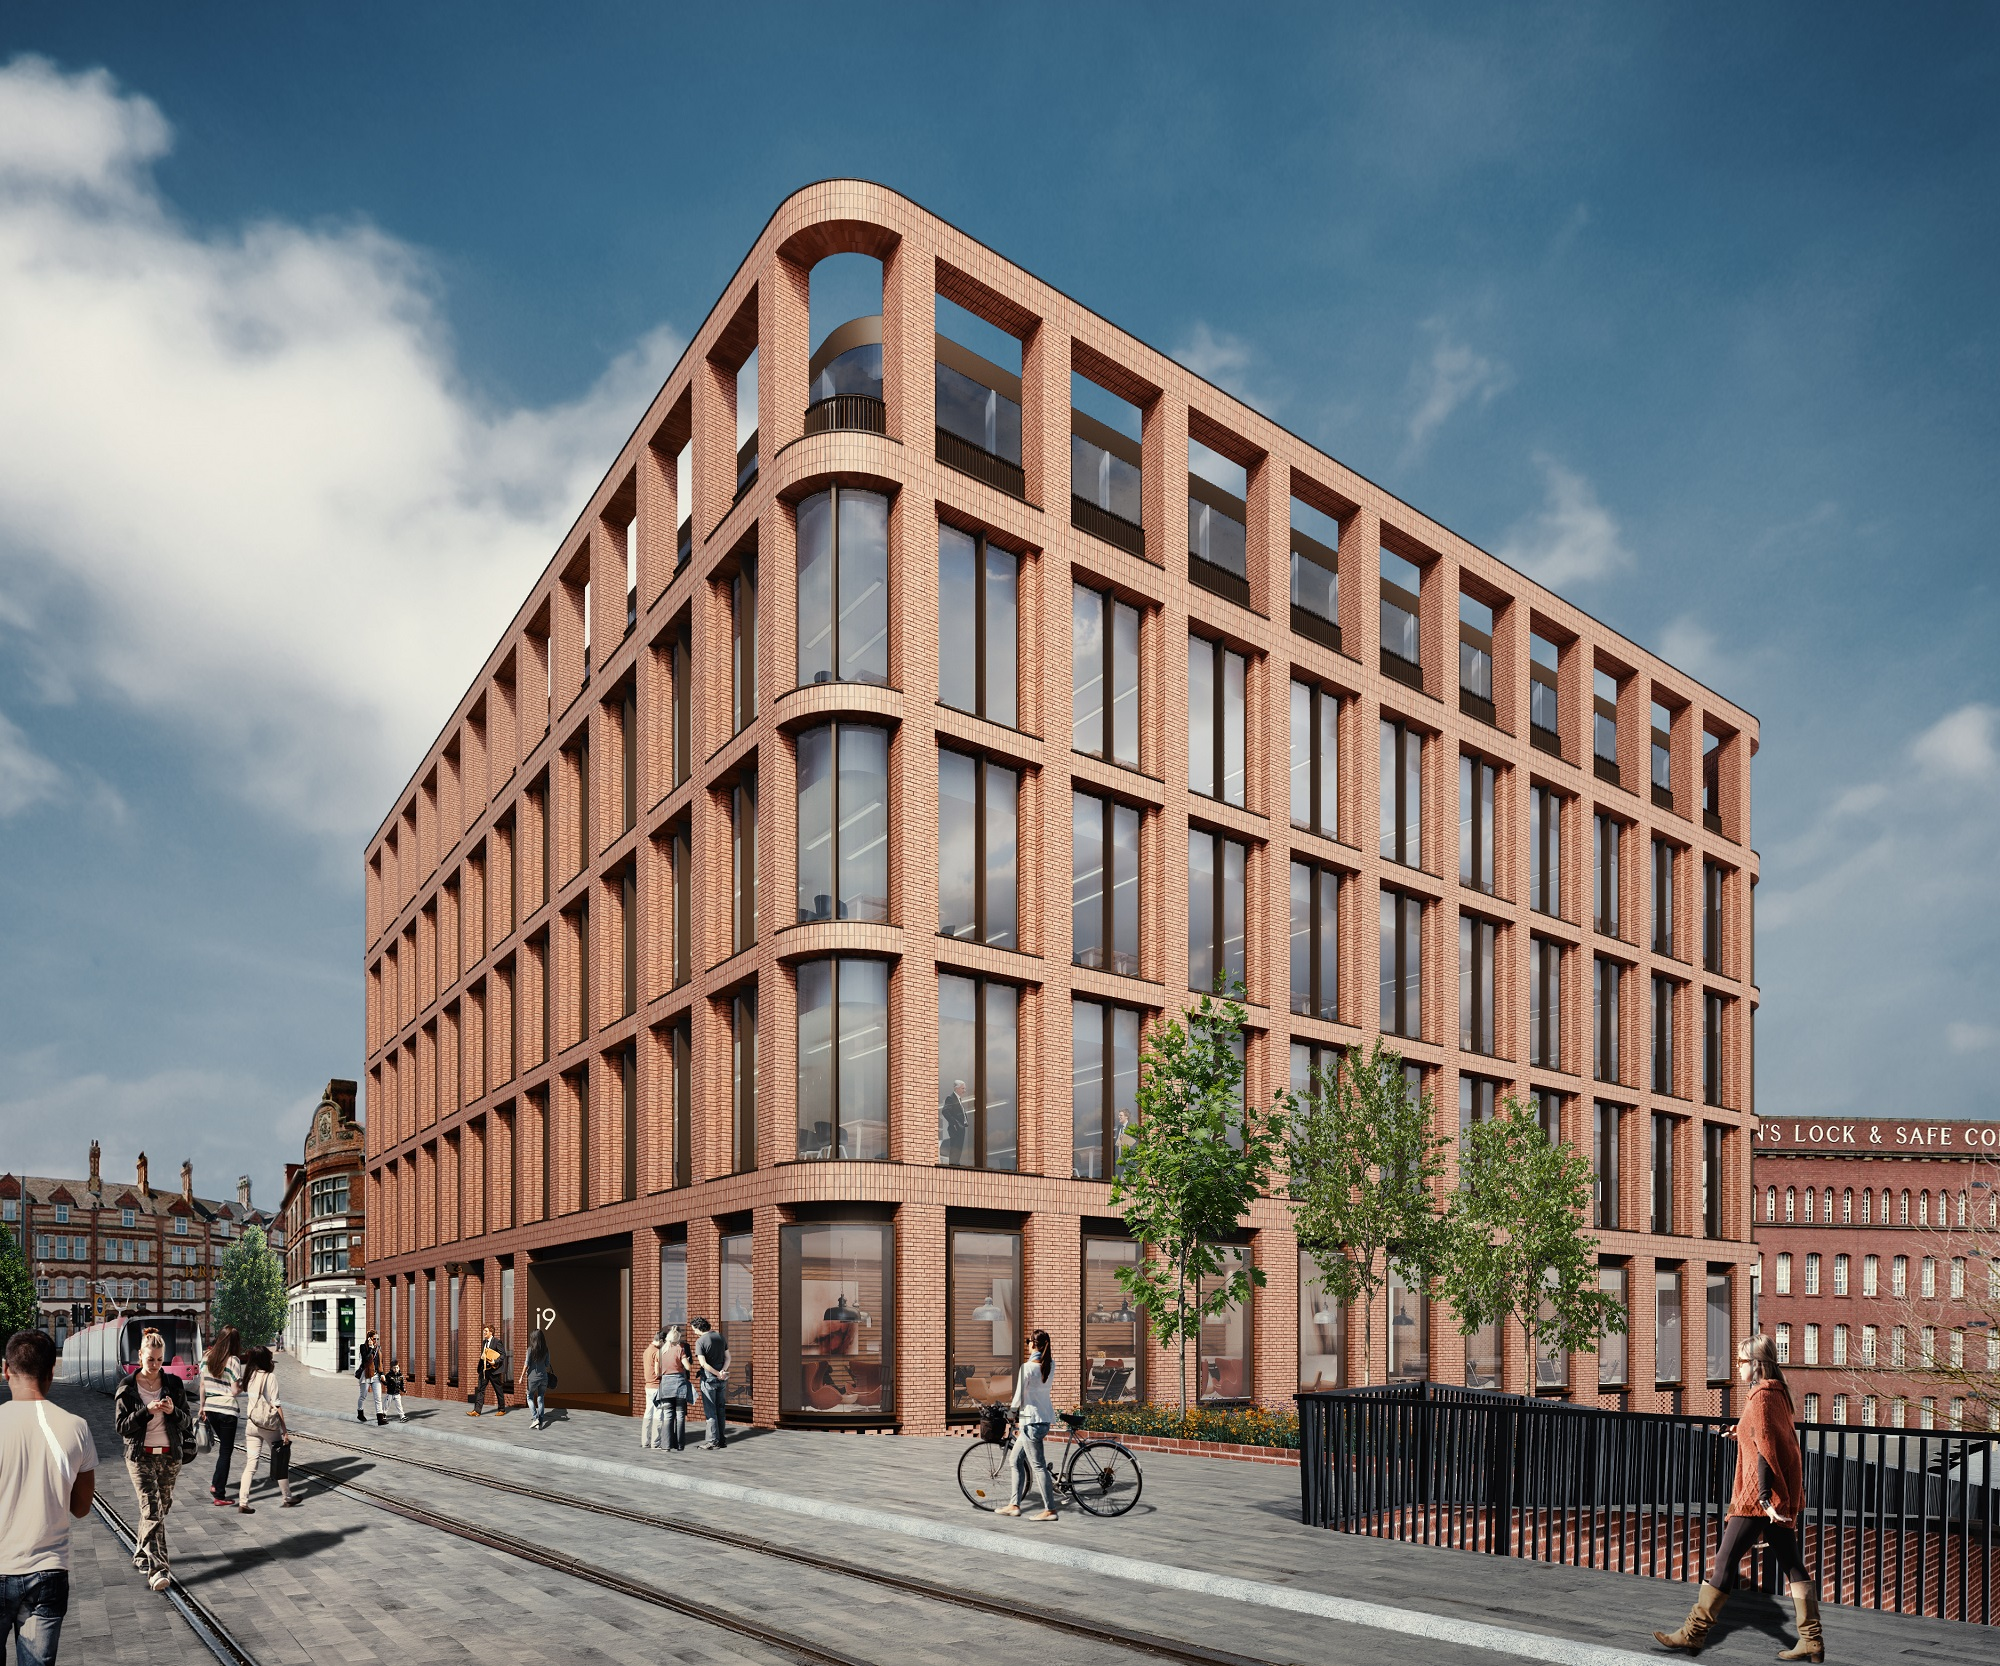 Planning approved for i9 city centre office development